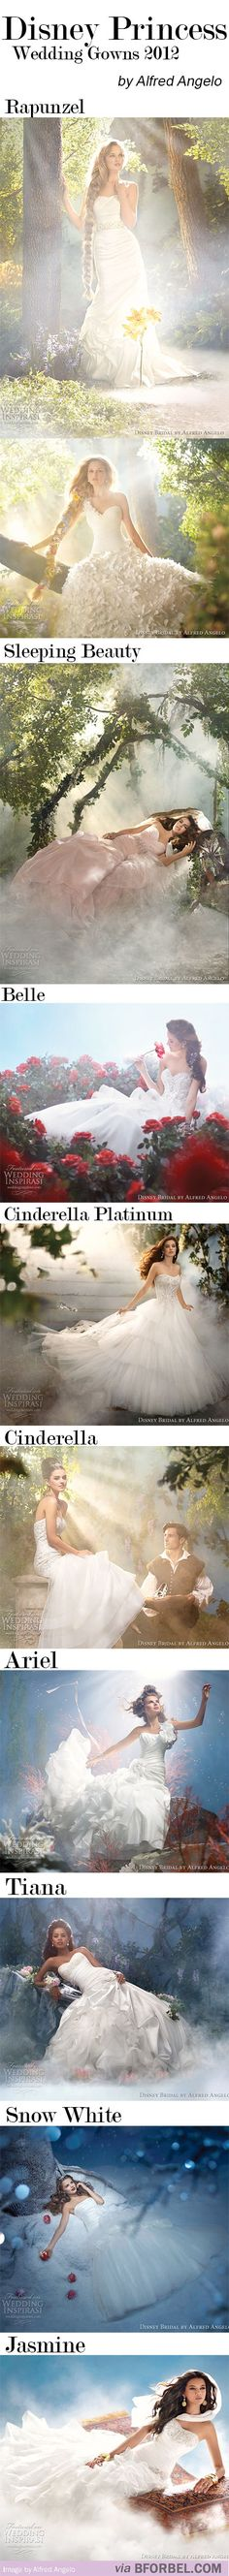 The Cinderella Platinum dress is quite pretty